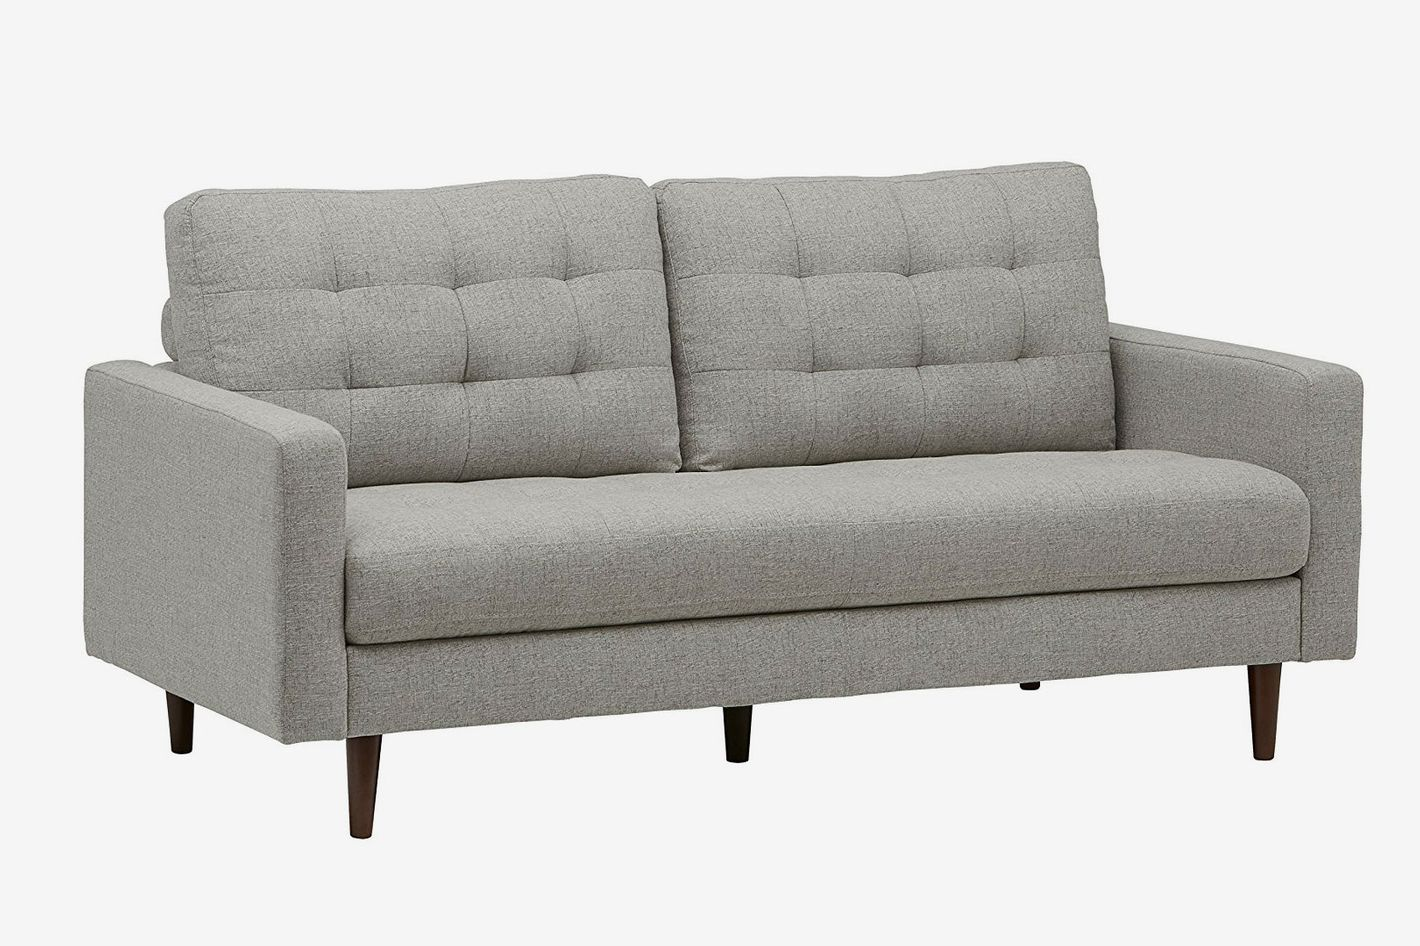 Rivet Cove Mid-Century Tufted Sofa